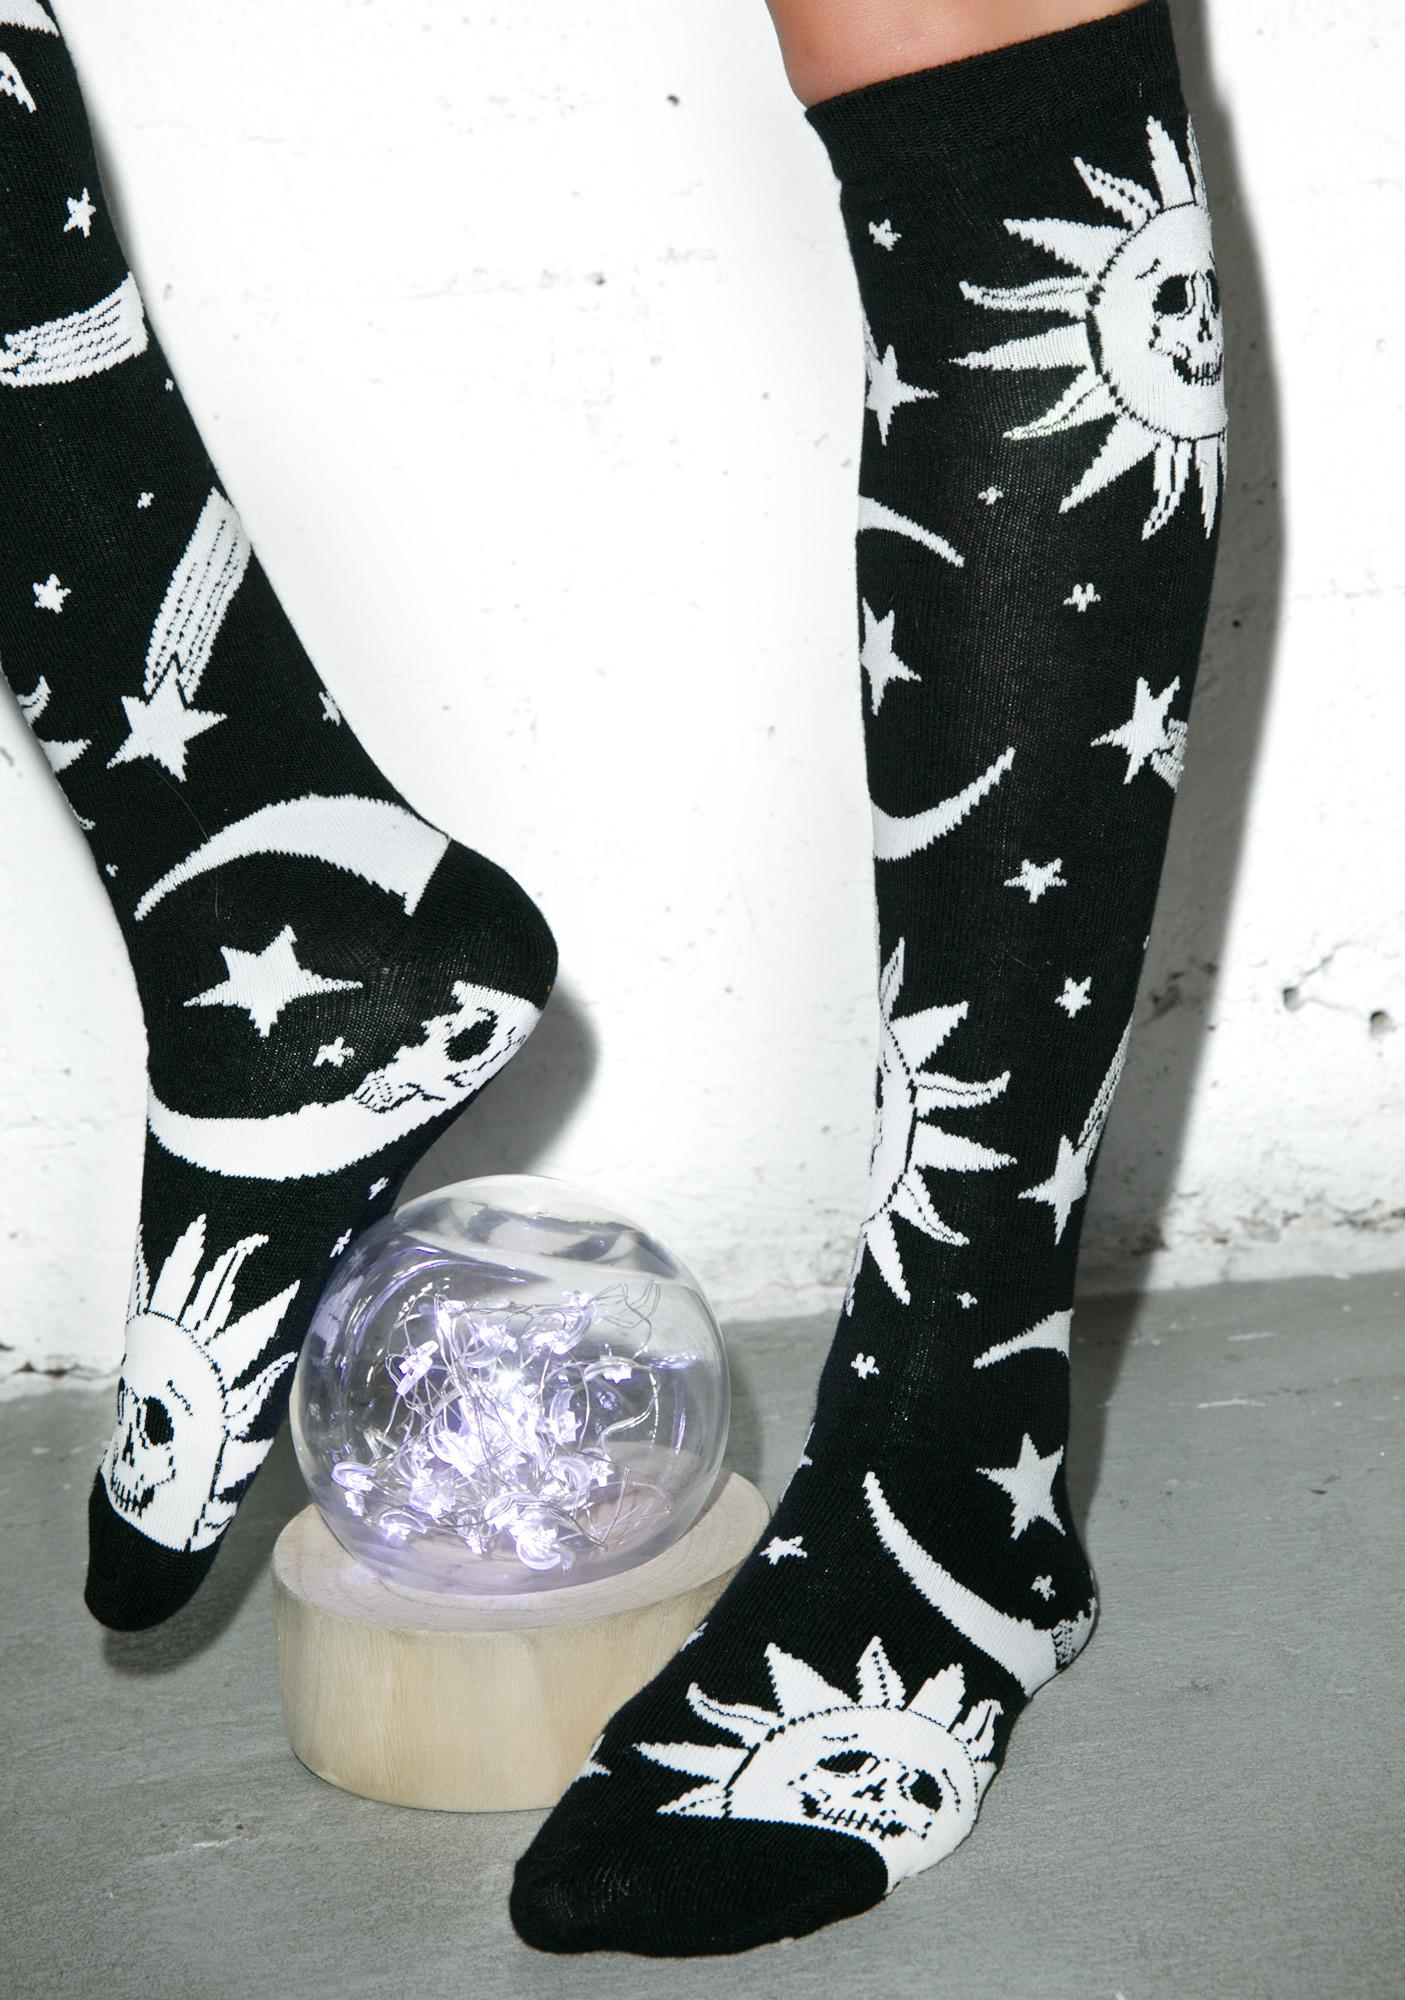 Killstar Cozmic Death Socks